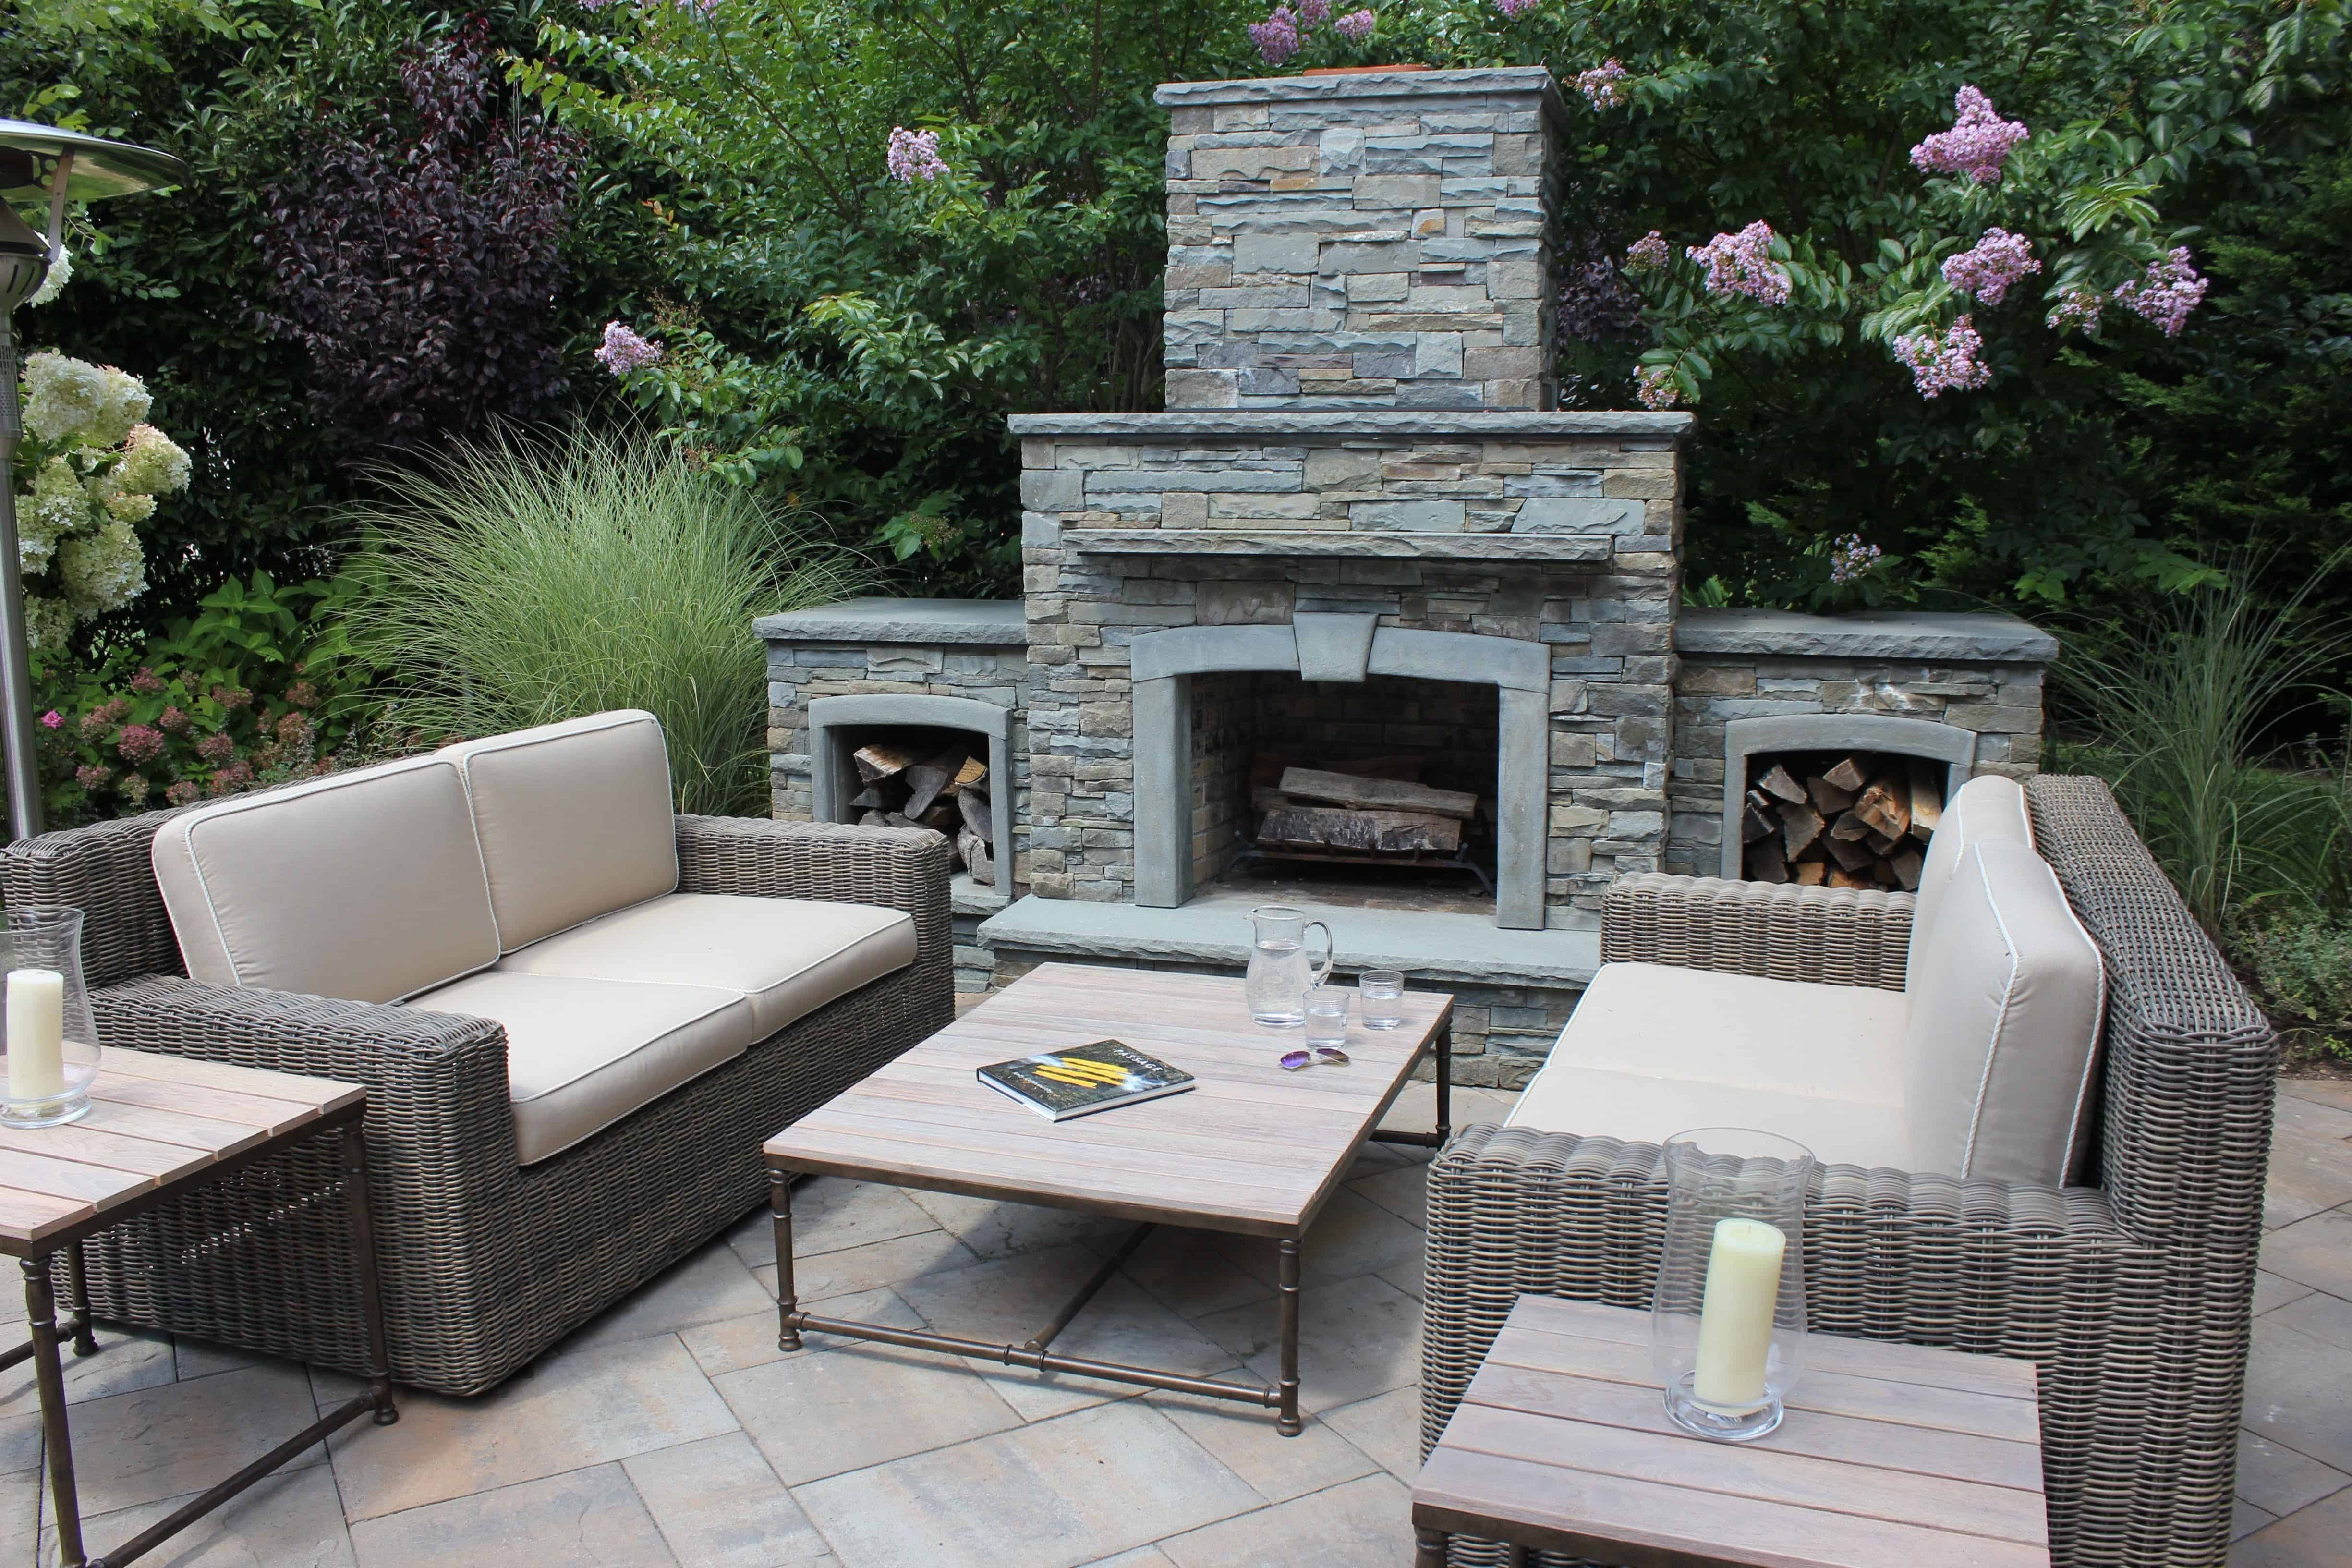 Grand Outdoor Fireplace with Natural Bluestone Veneer - Roslyn Heights, Long Island NY